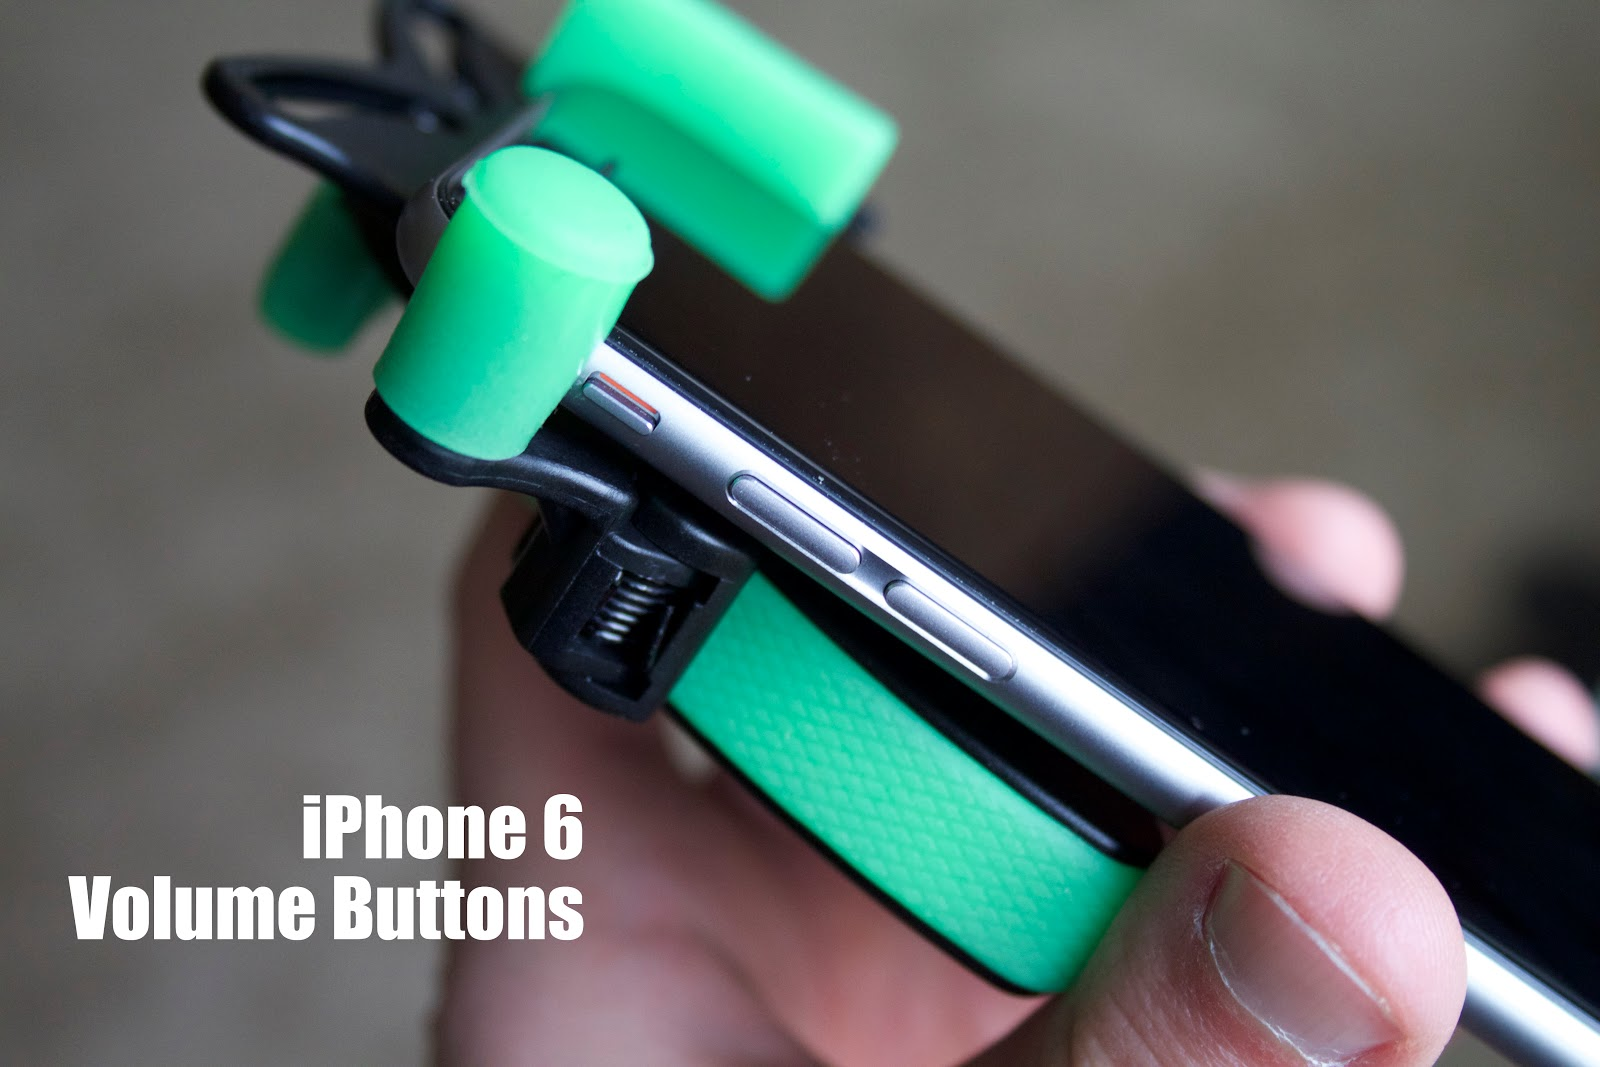 iphone 6 volume buttons